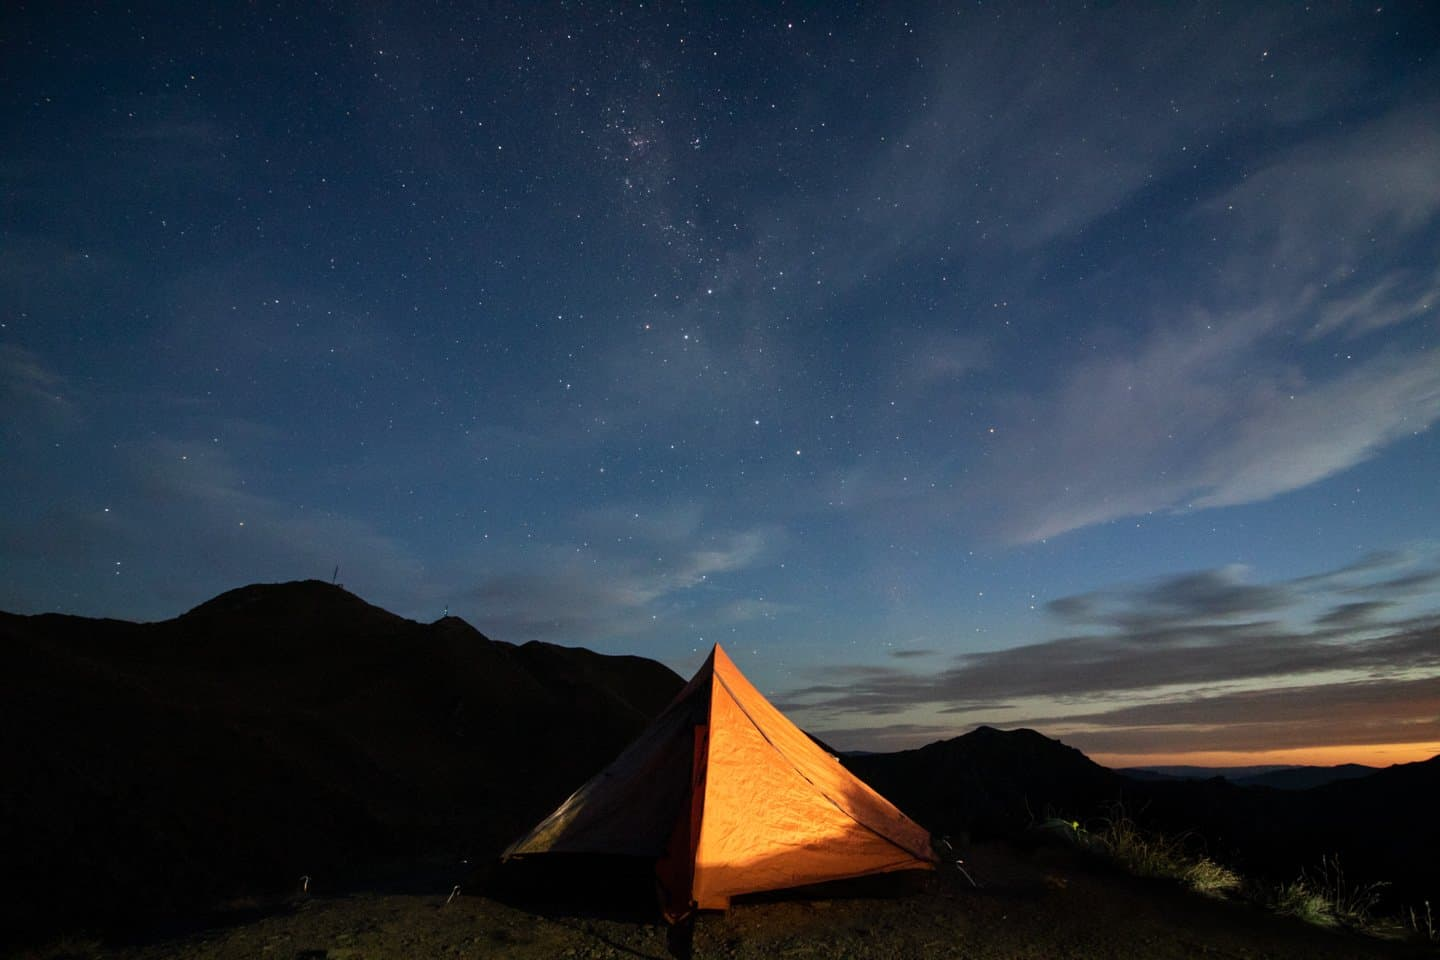 Camping under the stars on our New Zealand roadtrip.